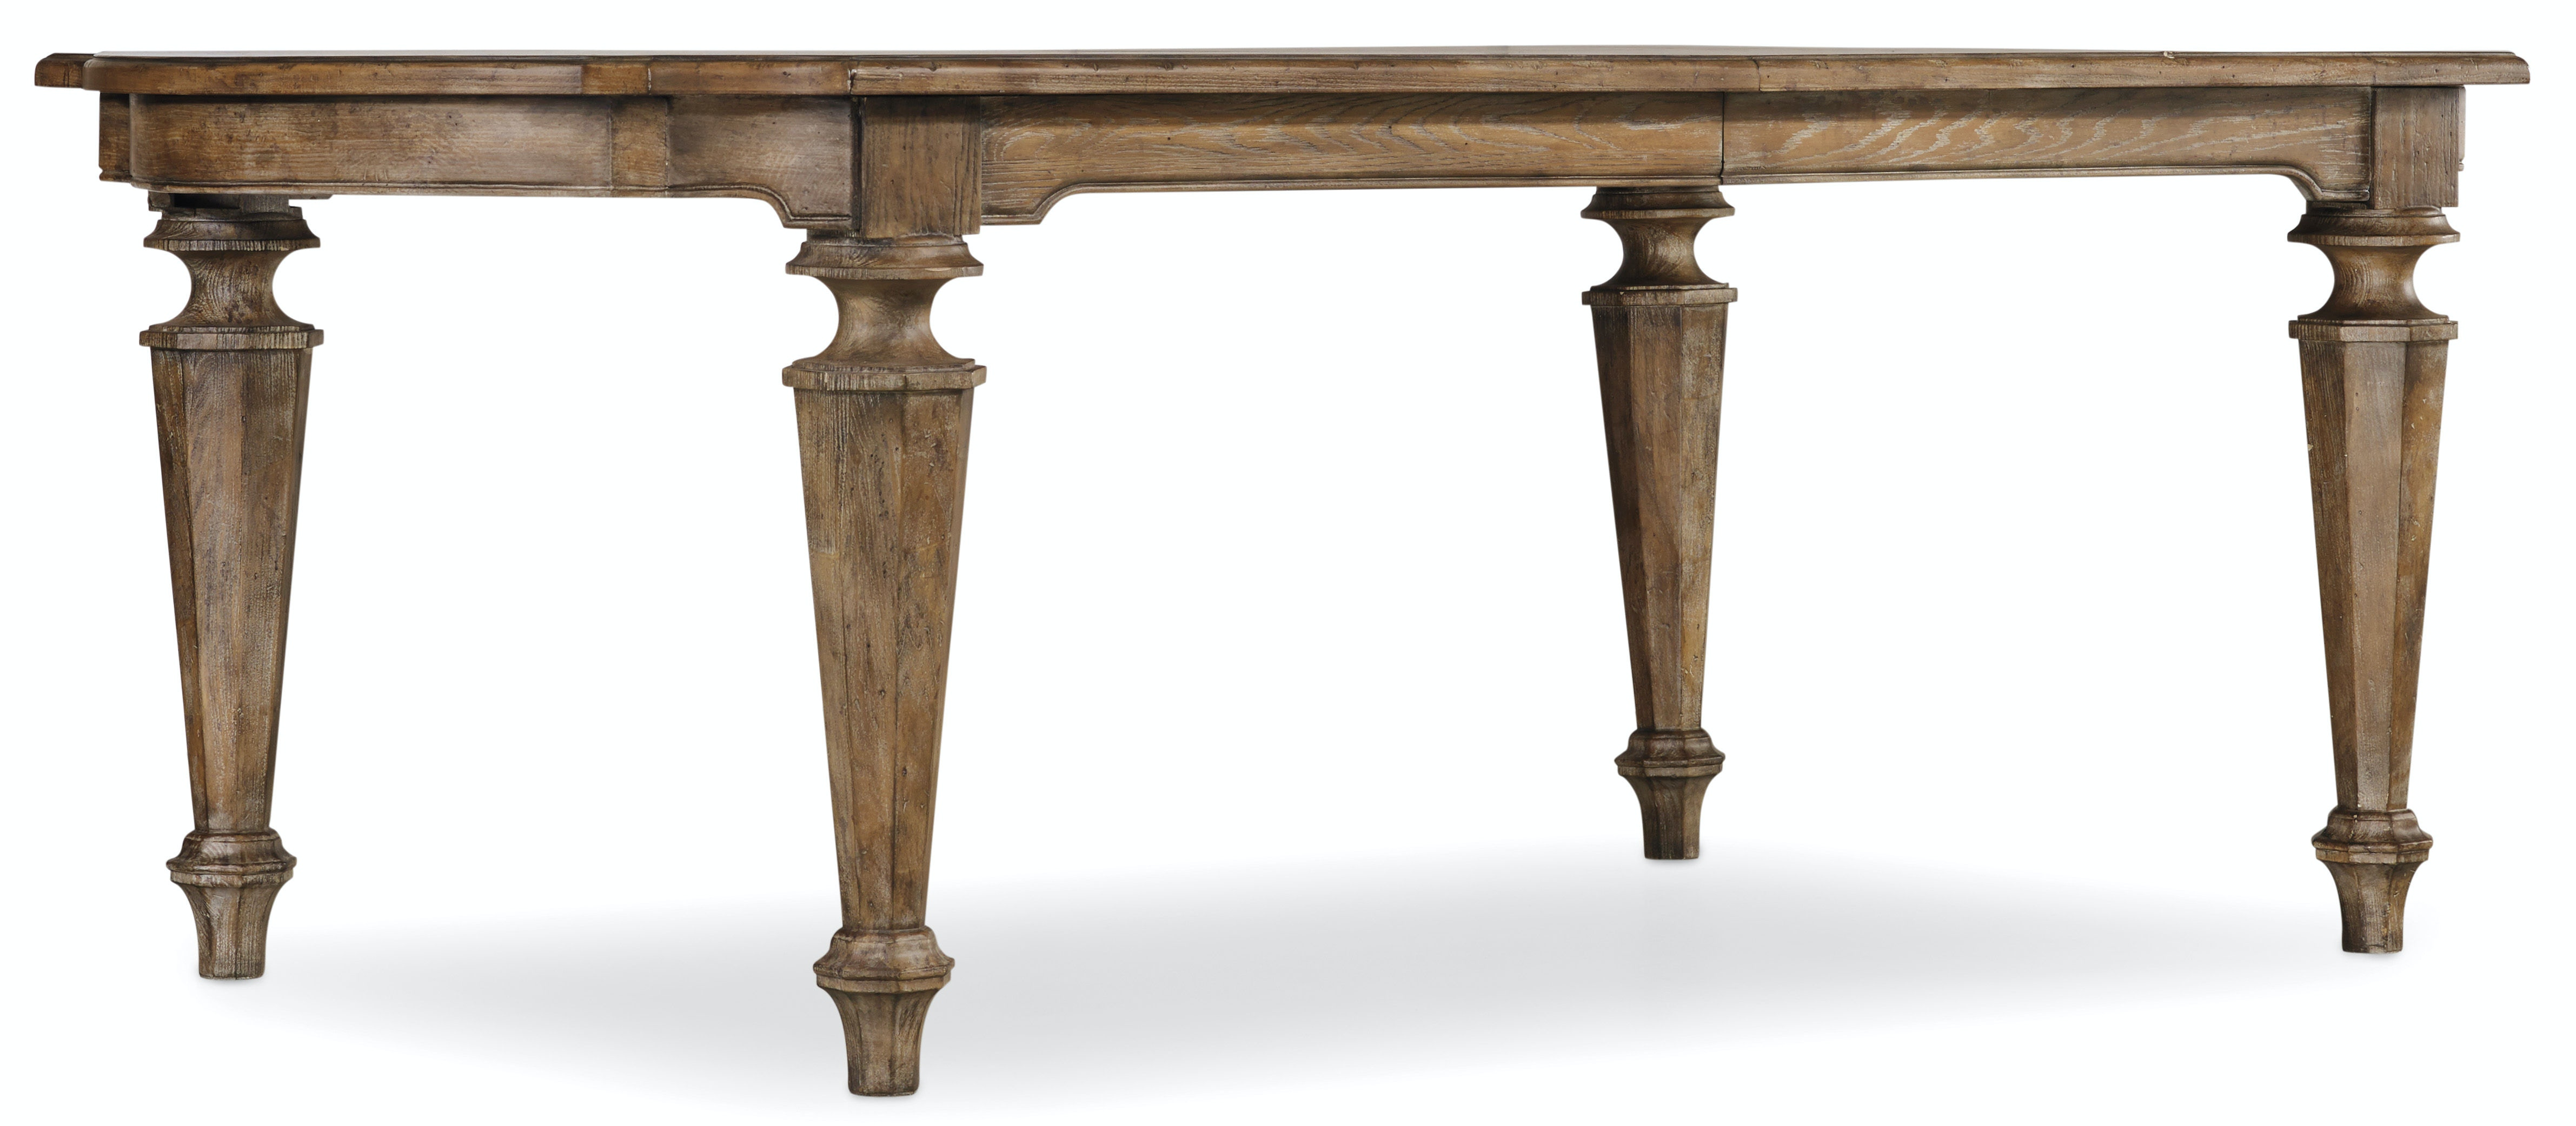 Unique Wicker End Table House Design 100 Solid Wood Coffee